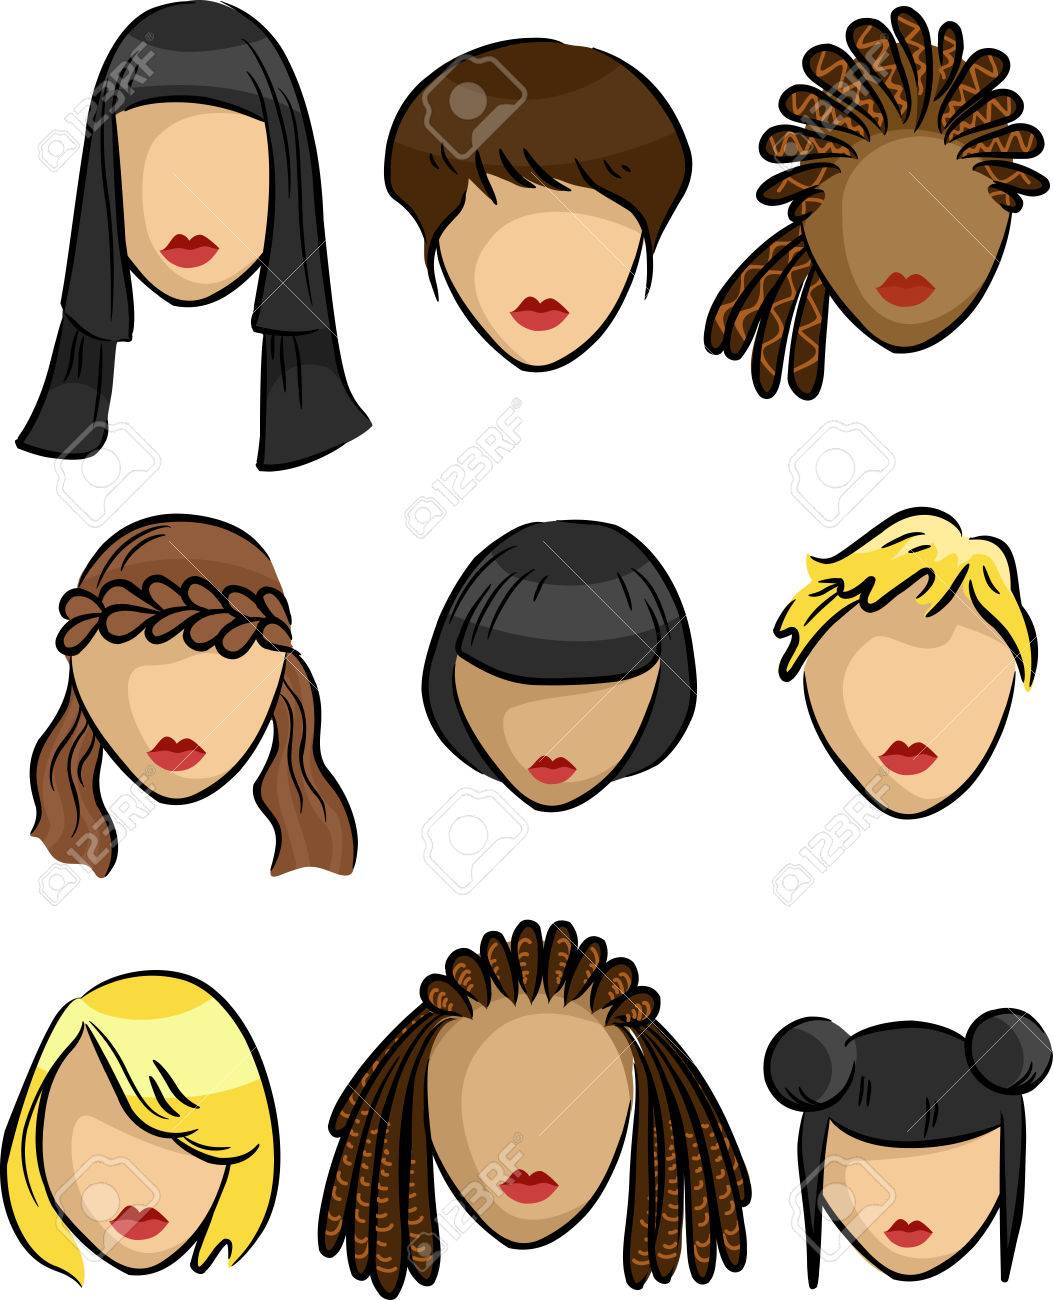 Grouped Illustration Featuring Samples Of Hairstyles For Women Stock ...